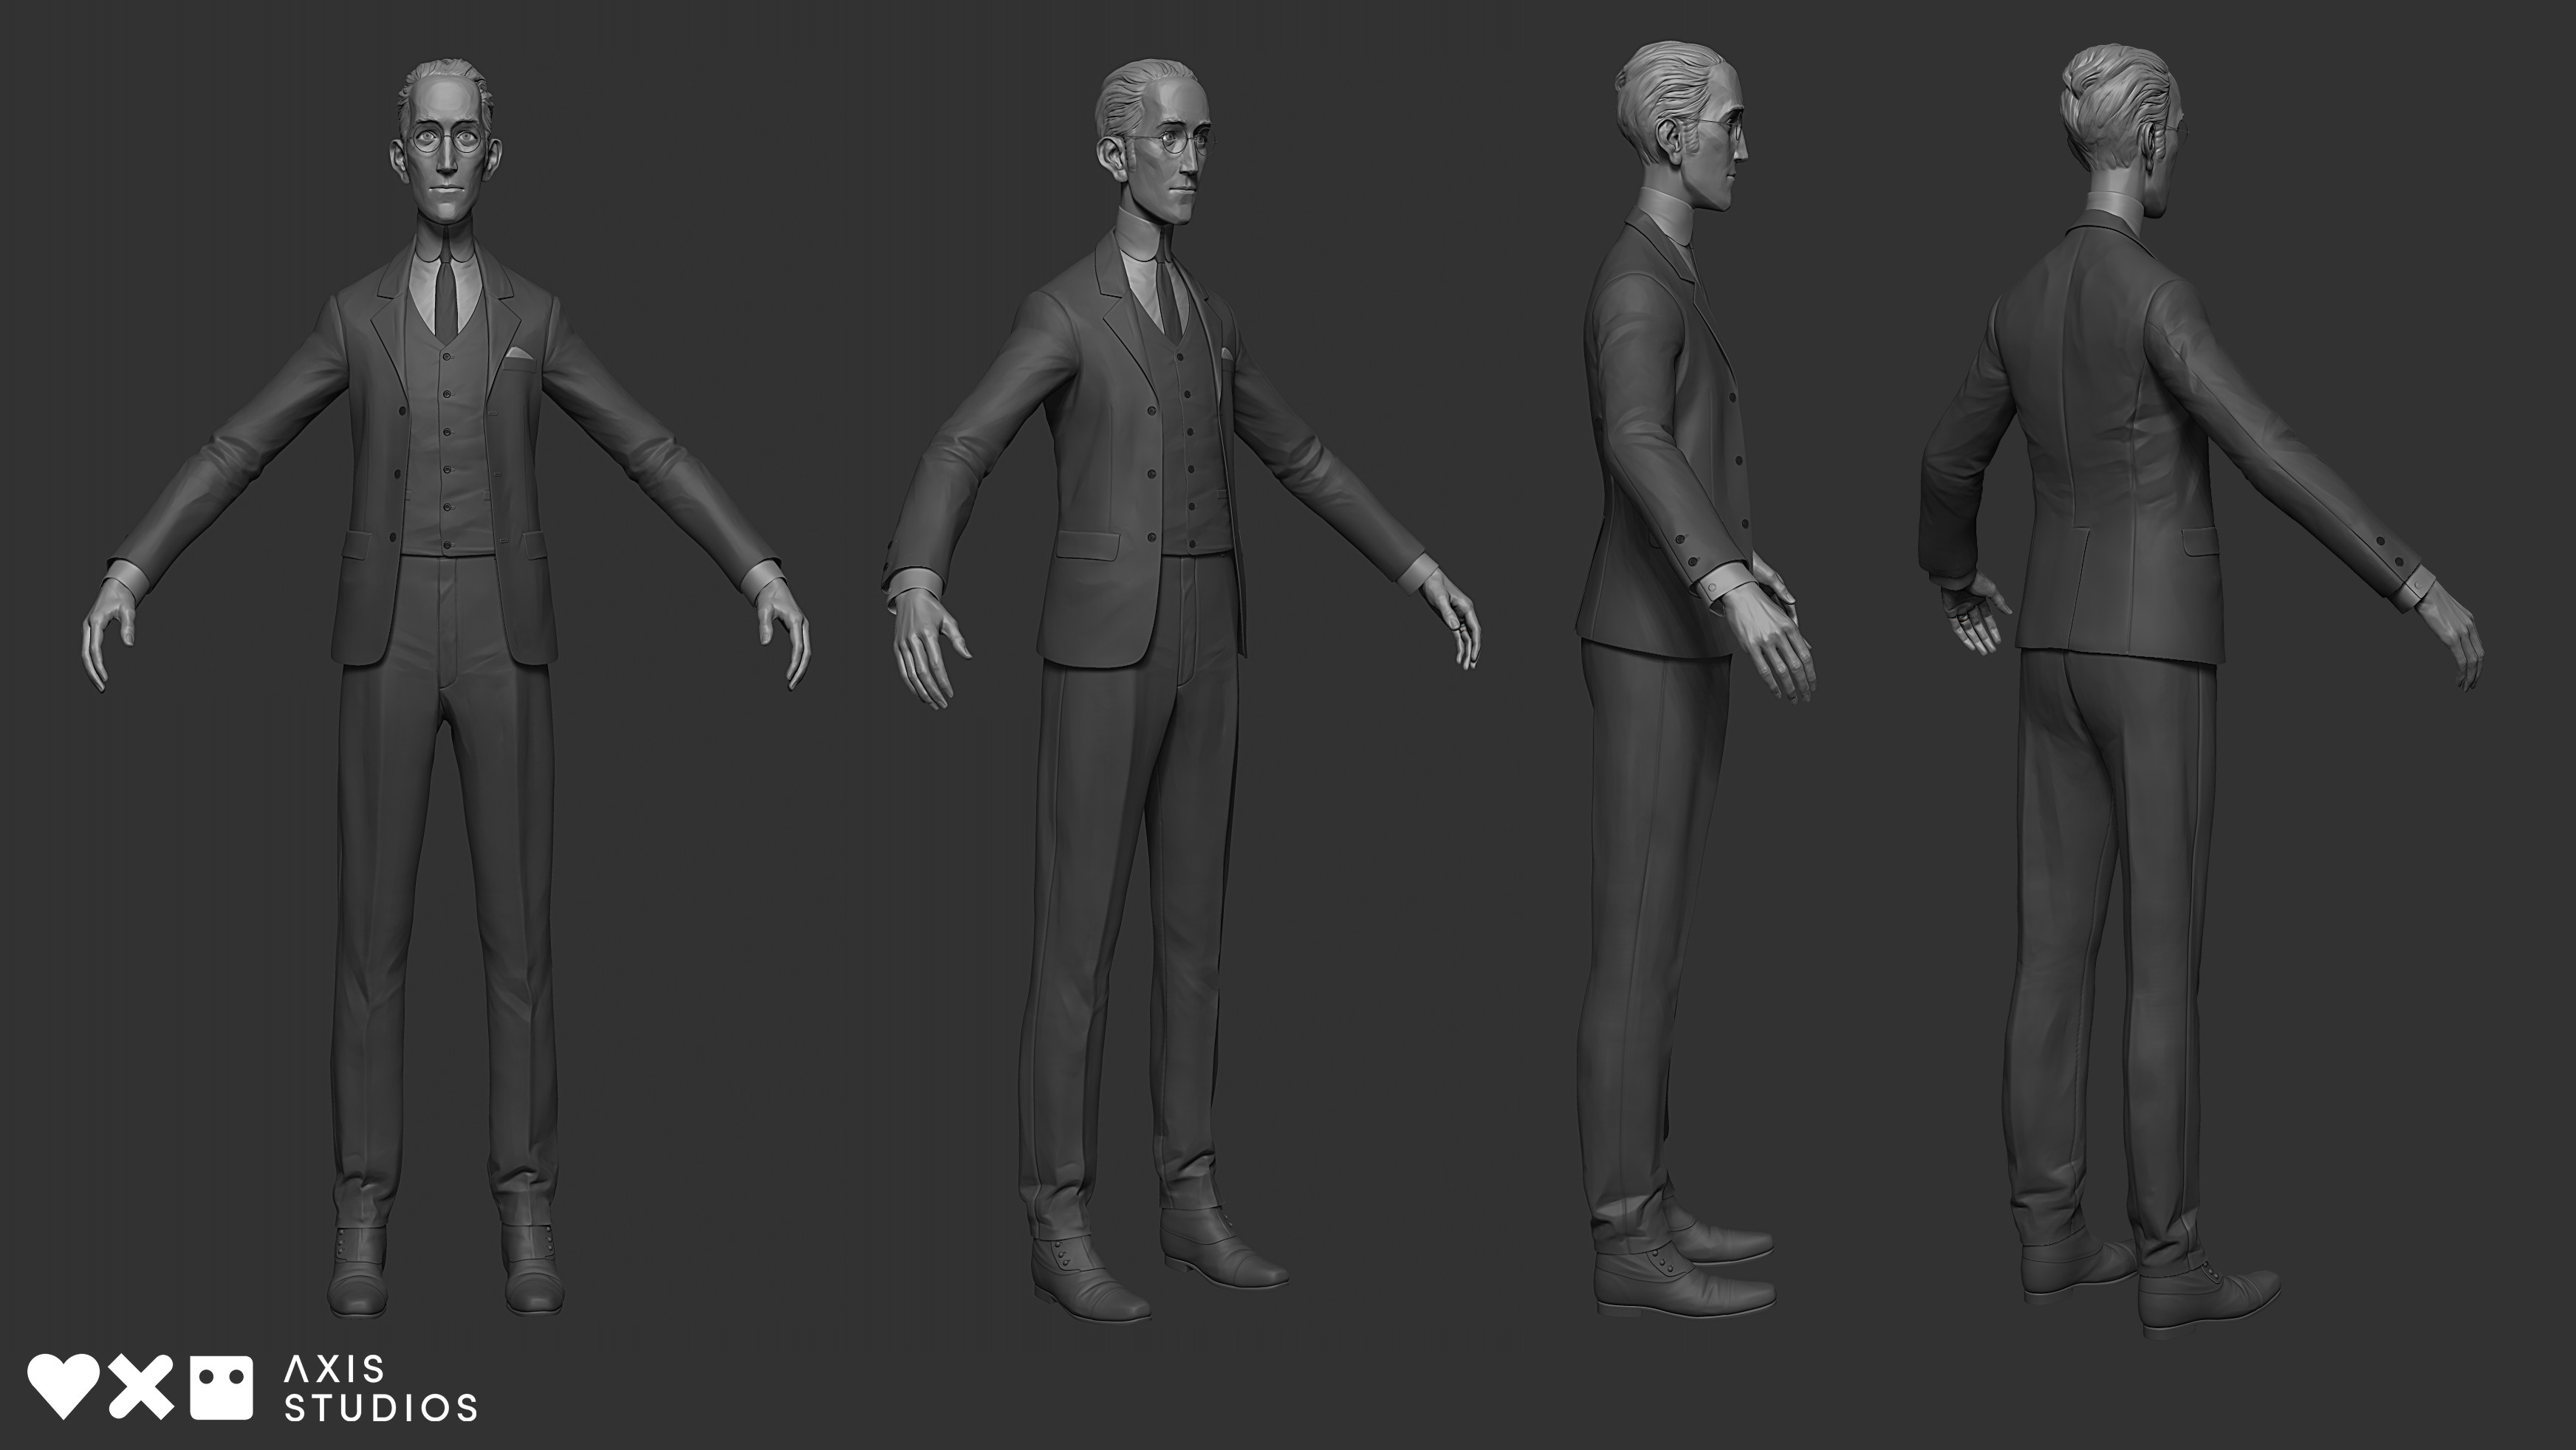 Final full body model. The head was a collaboration between James W Cain and myself, and I created the body/suit model and the final production asset.